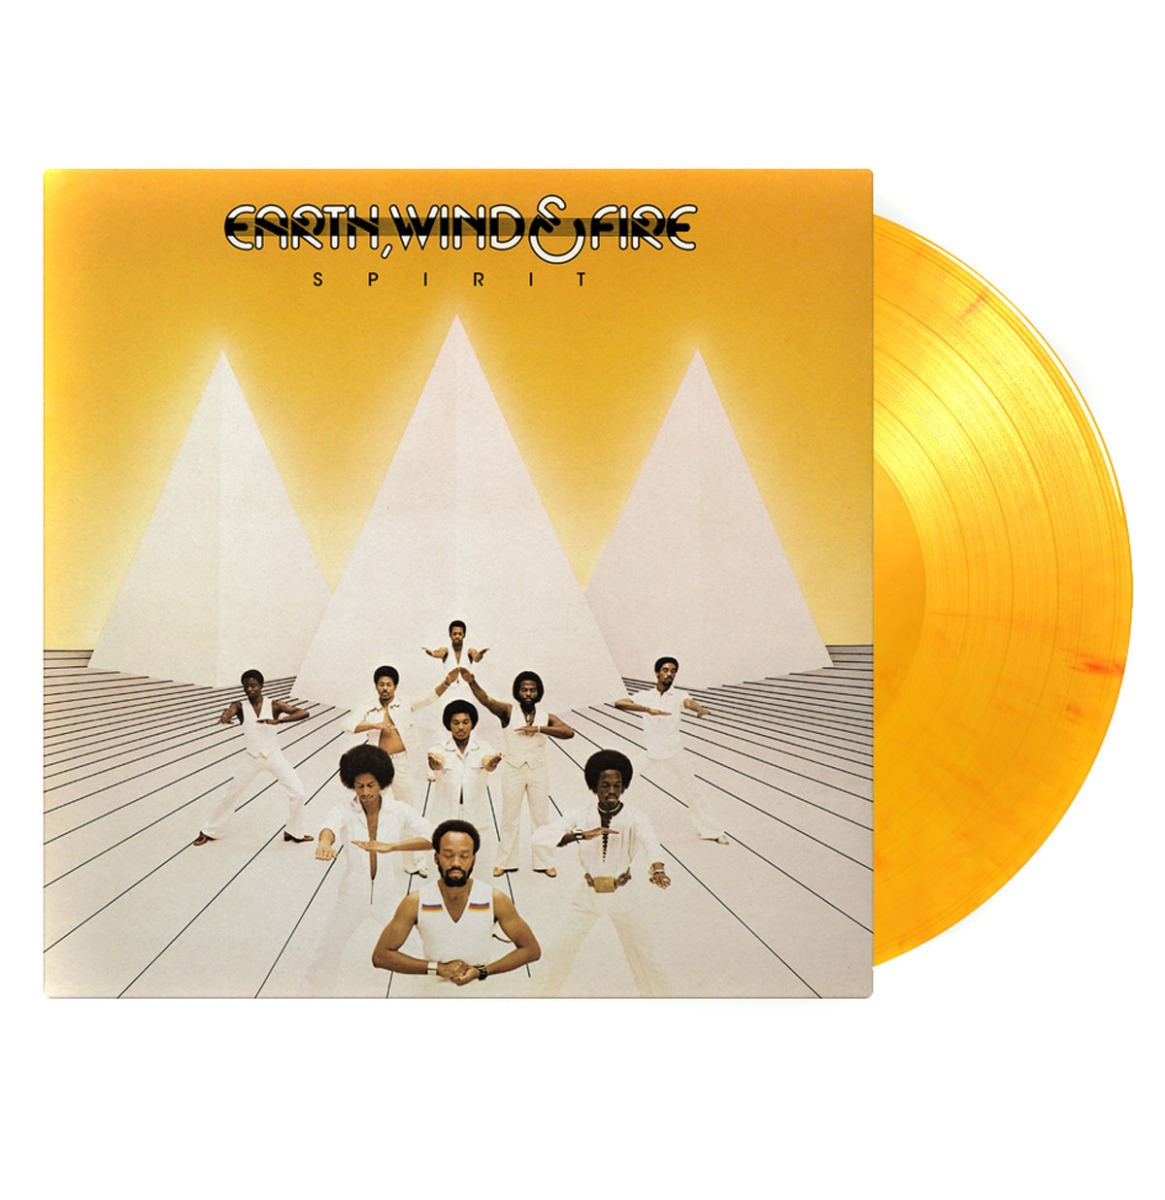 Earth, Wind & Fire - Spirit LP - Limited Edition